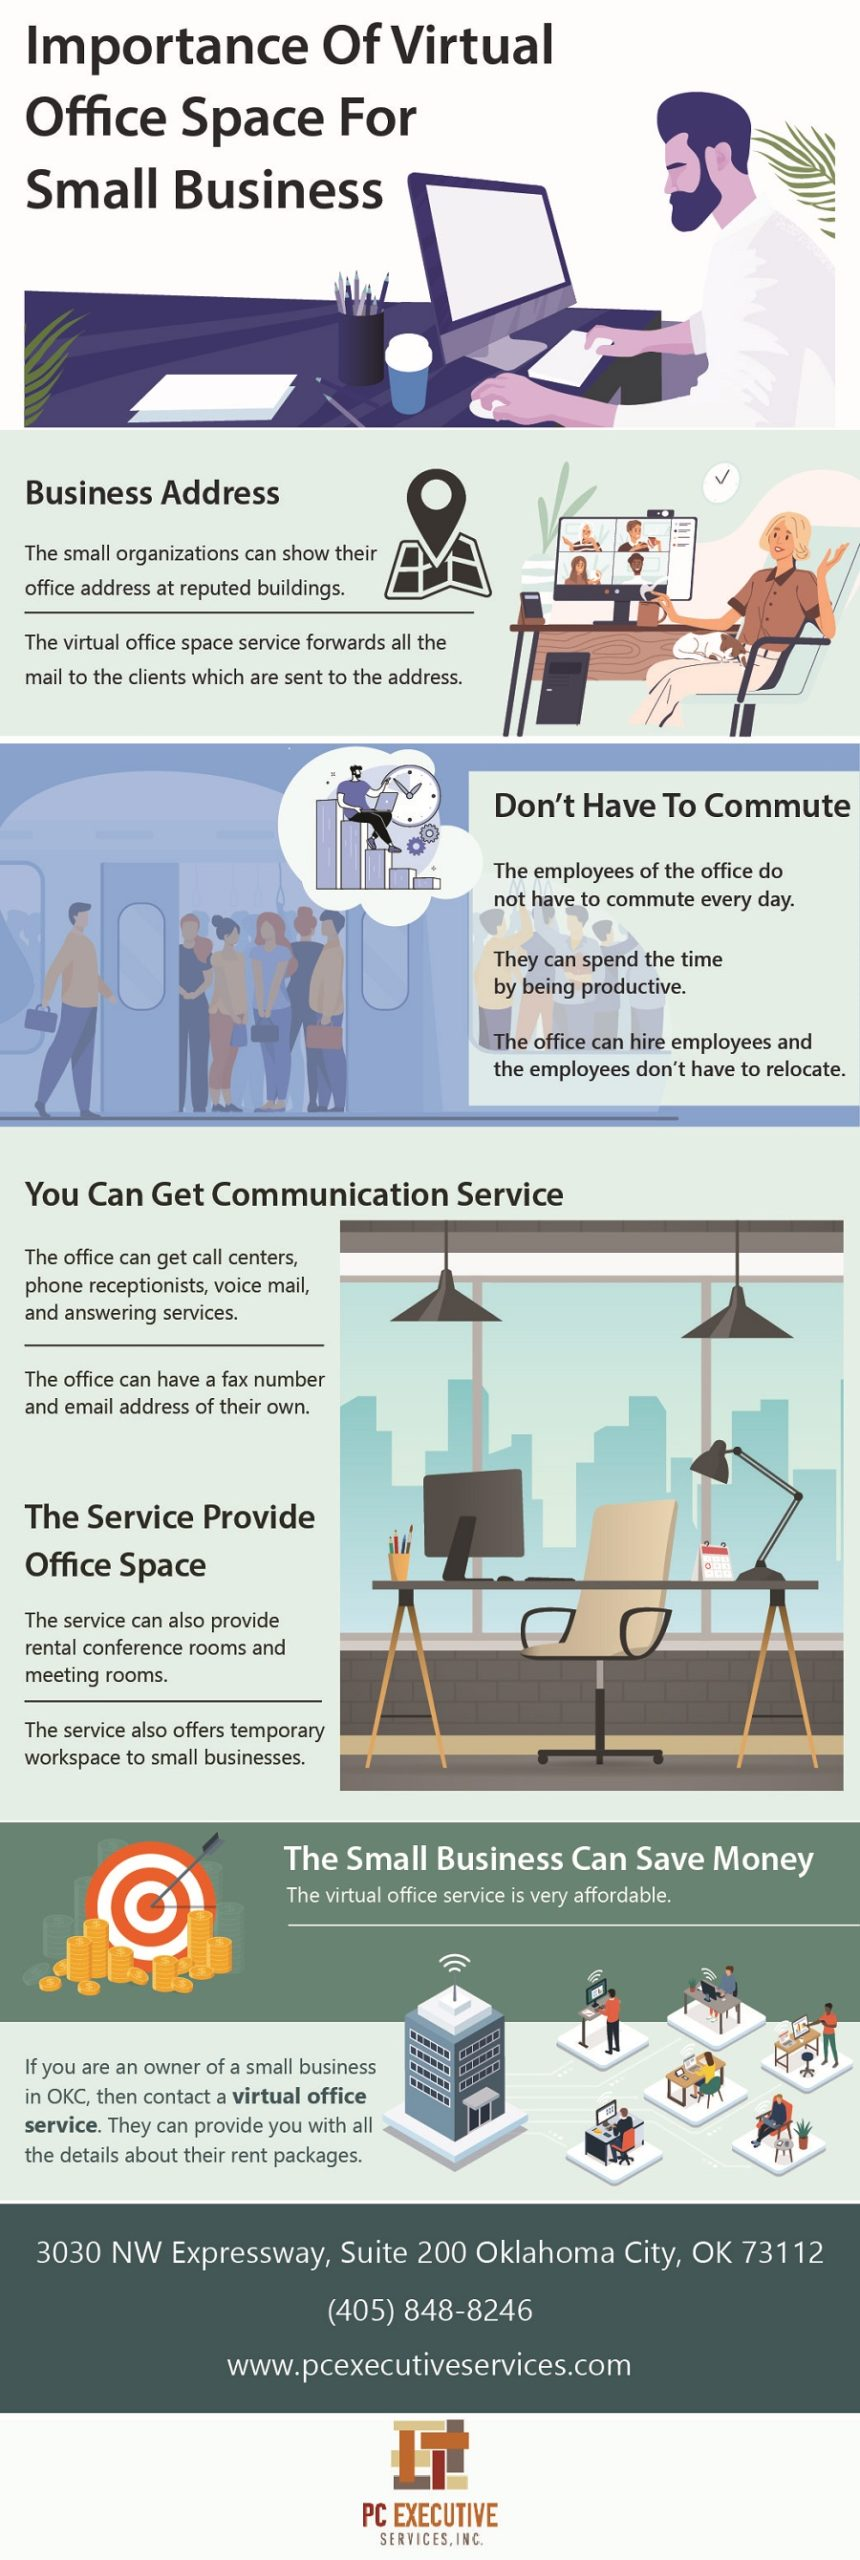 Importance of Virtual Office Space For Small Business (nfographic)